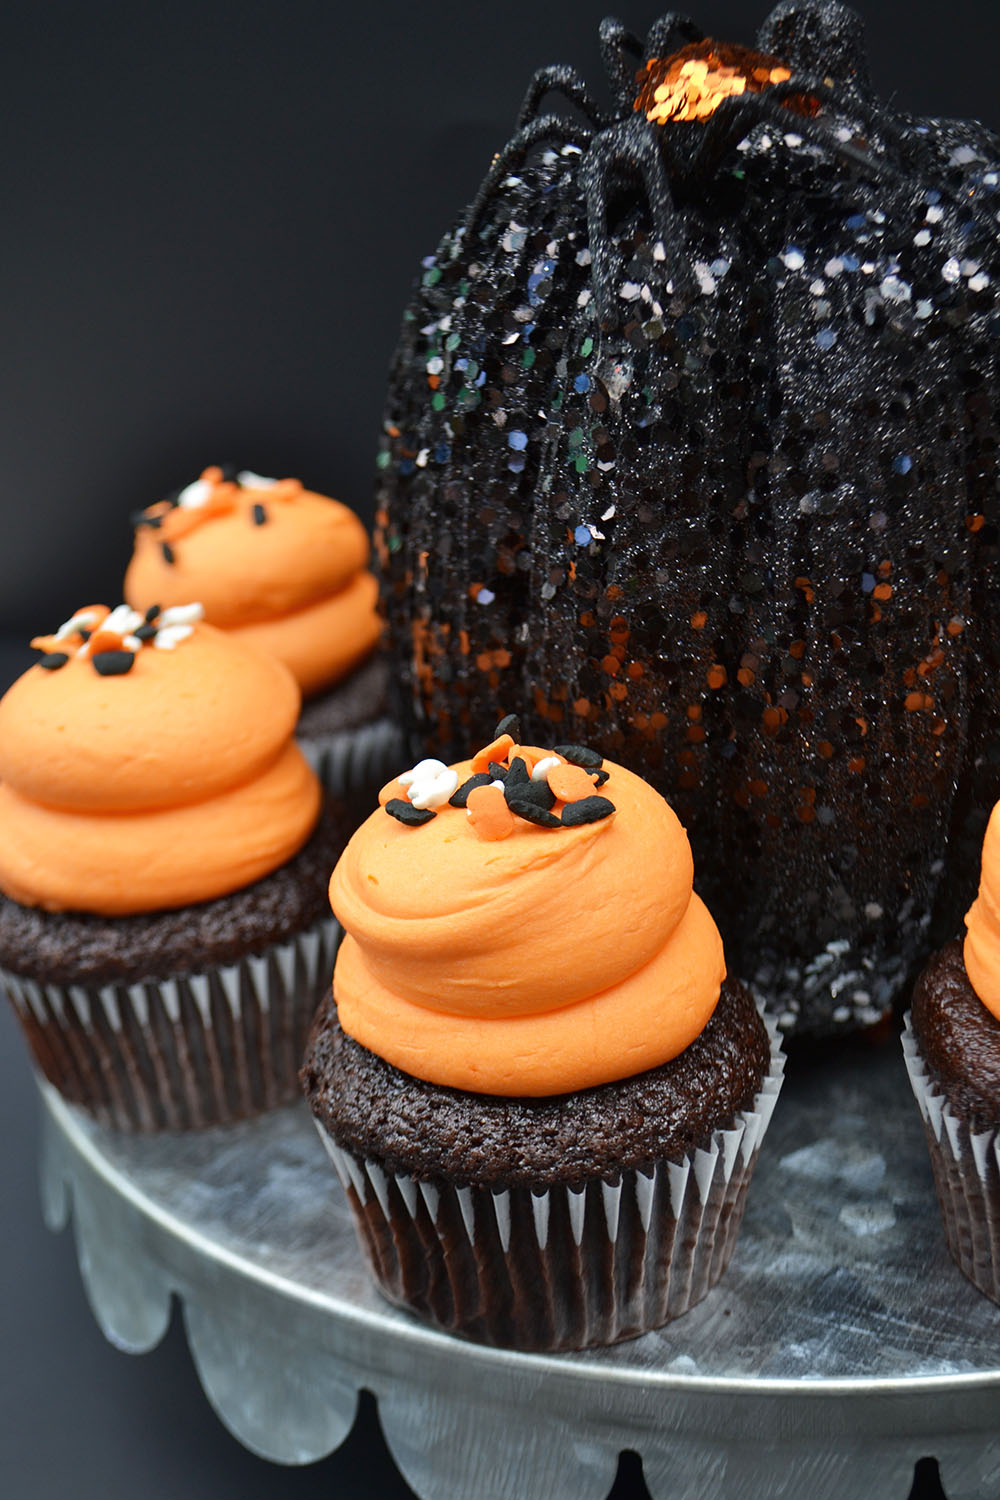 Large Chocolate Cupcake with Halloween Sprinkles $3.50